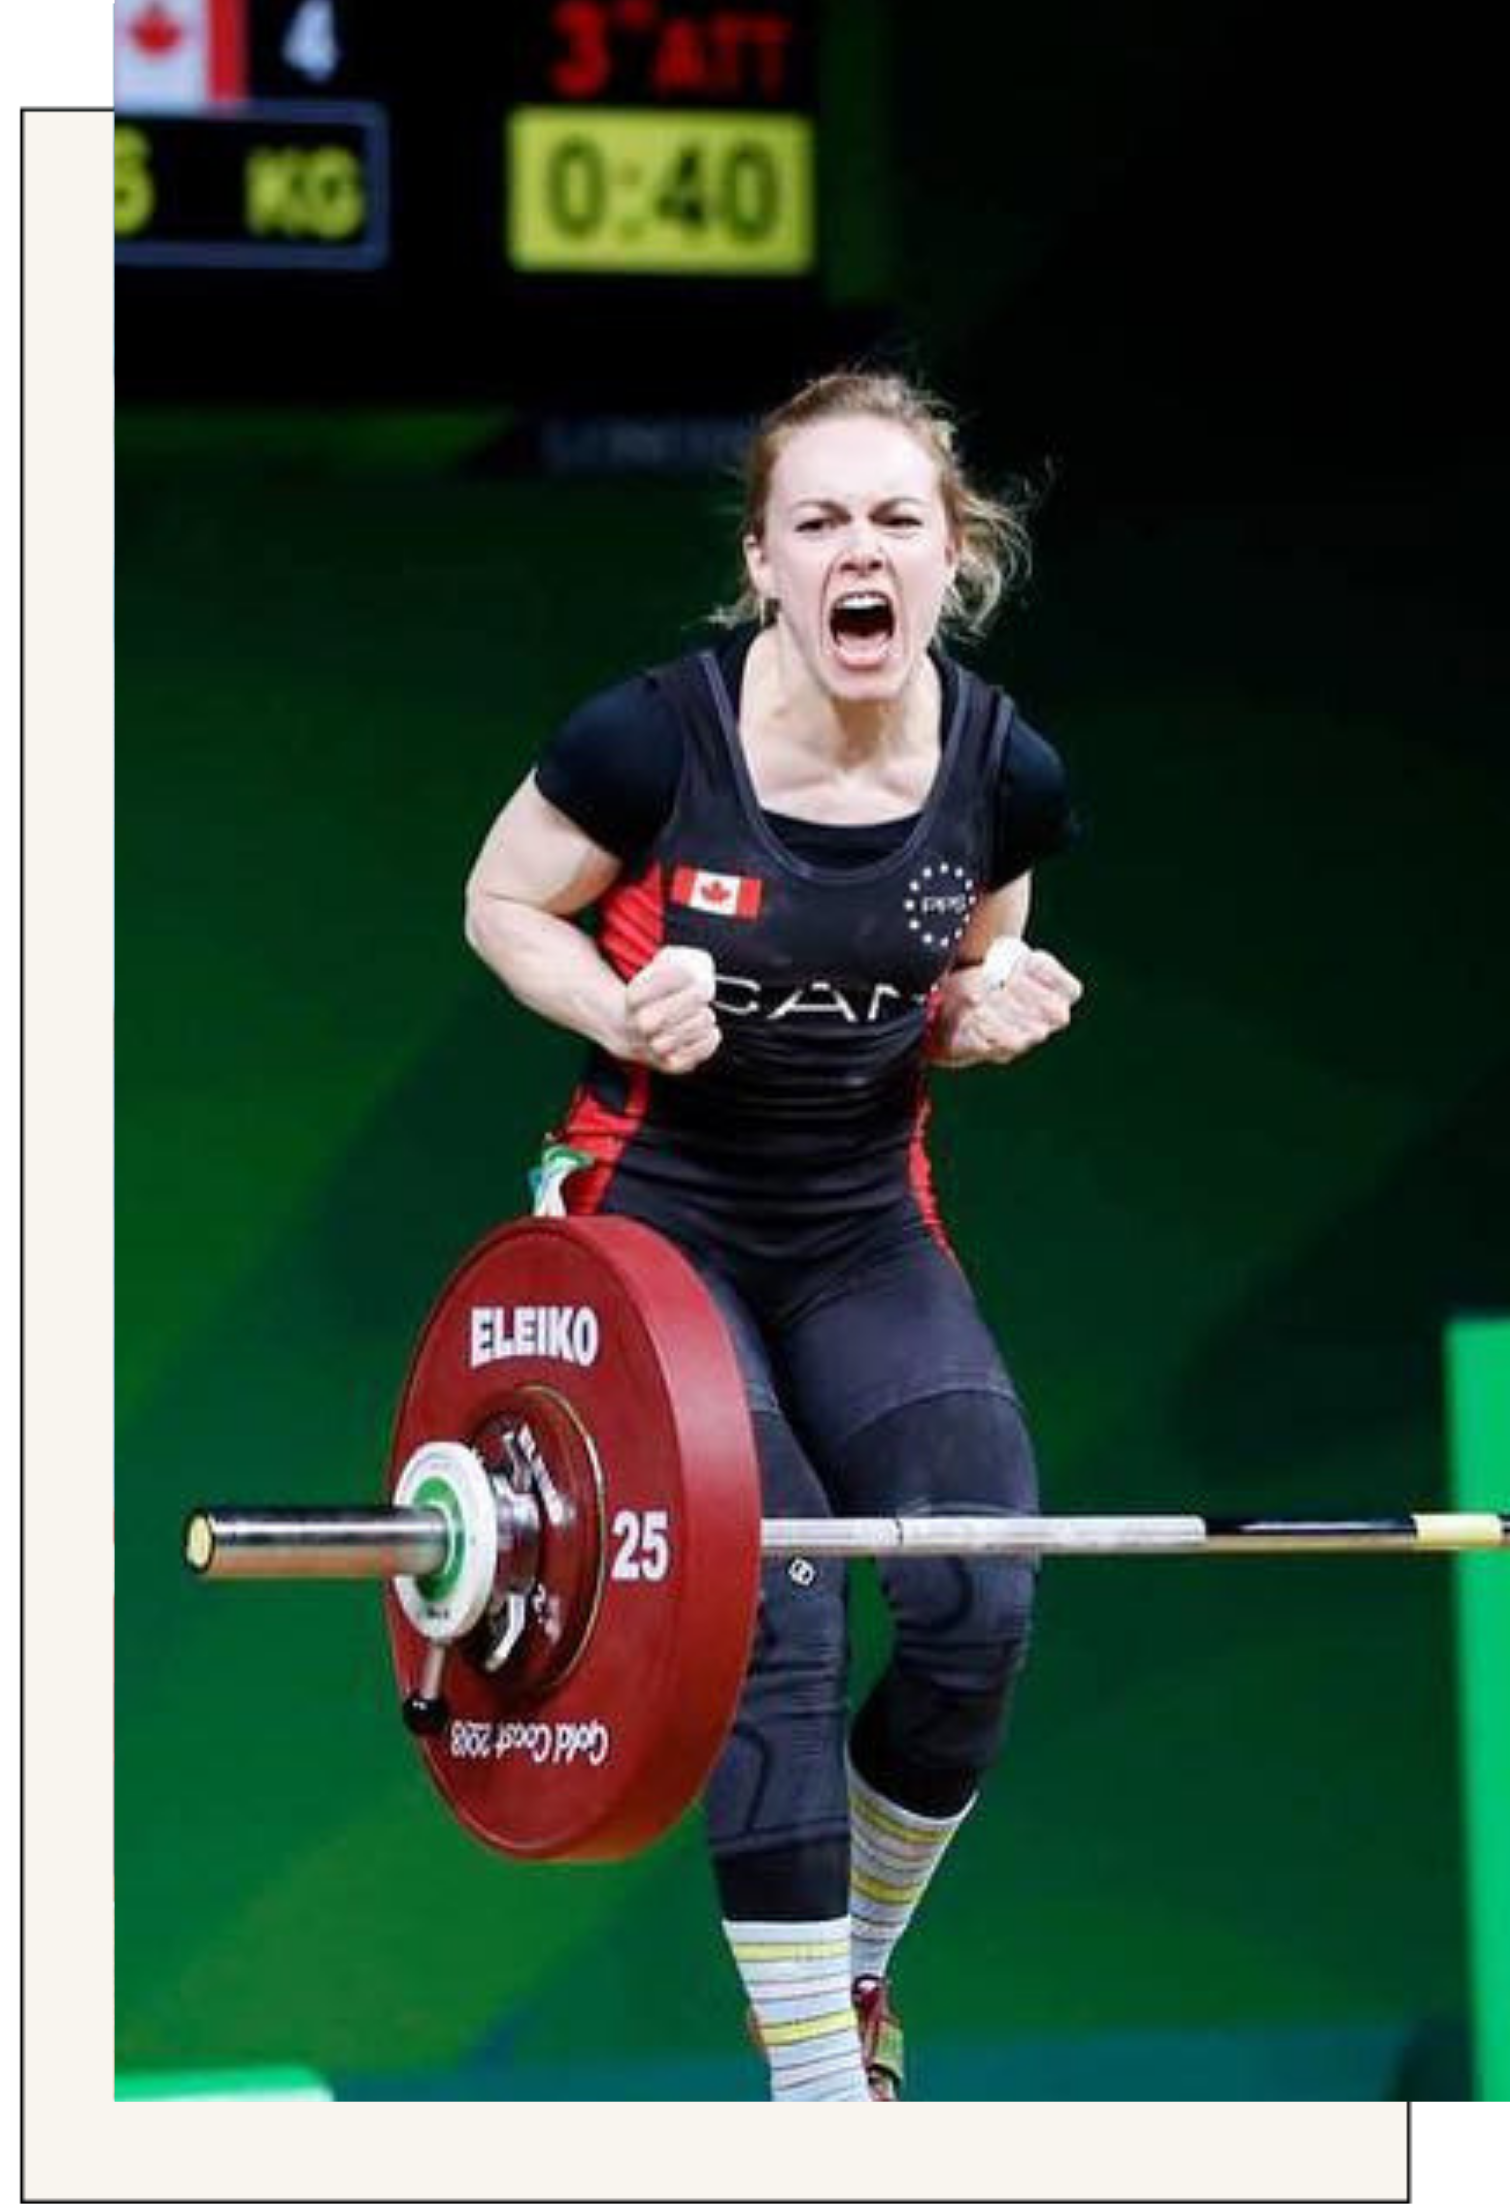 "Team Canada WeightliftingAmanda Braddock - 3X National Champion & Gold Medalist""As a high-level athlete, working with Vera Performance has been one of the best decisions I've made in the effort to achieve and sustain my best possible performance.I compete frequently as part of Team Canada - not only at international events but at smaller meets throughout the year. I may need to make weight 8 to 10 times a year while ensuring my body is fueled and as strong as possible.Since working with Vera Performance, I have had some of the best competition performances of my career - including breaking a longstanding Canadian record and winning gold in an international meet. Most importantly, I feel confident and consistent in my lifting and look forward to many more meets with Vera Performance!"""